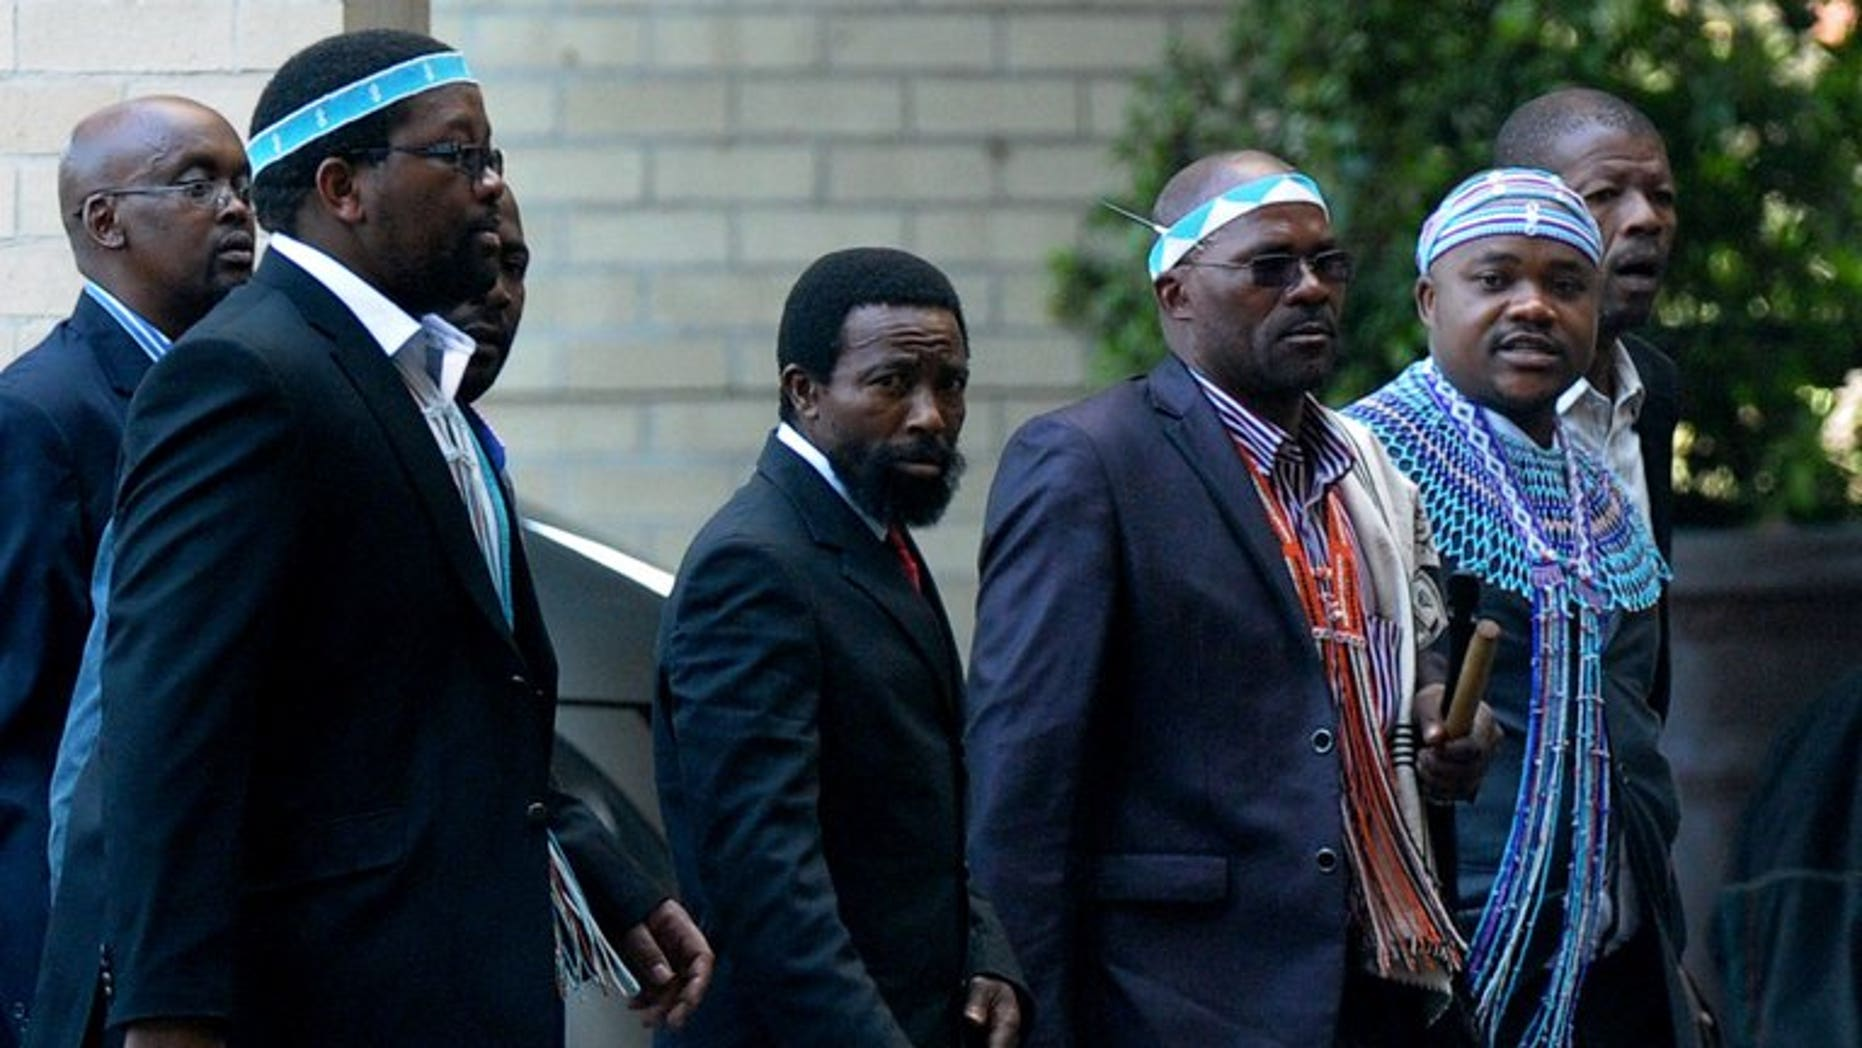 Thembu King Buyelekhaya Dalindyebo (C), flanked by chiefs, arrives on July 9, 2013 to visit former South African president Nelson Mandela at the Medi Clinic Heart Hospital in Pretoria. Dalindyebo defected from the ruling ANC to join the Democratic Alliance (DA) Monday, days after launching a fierce attack on President Jacob Zuma.